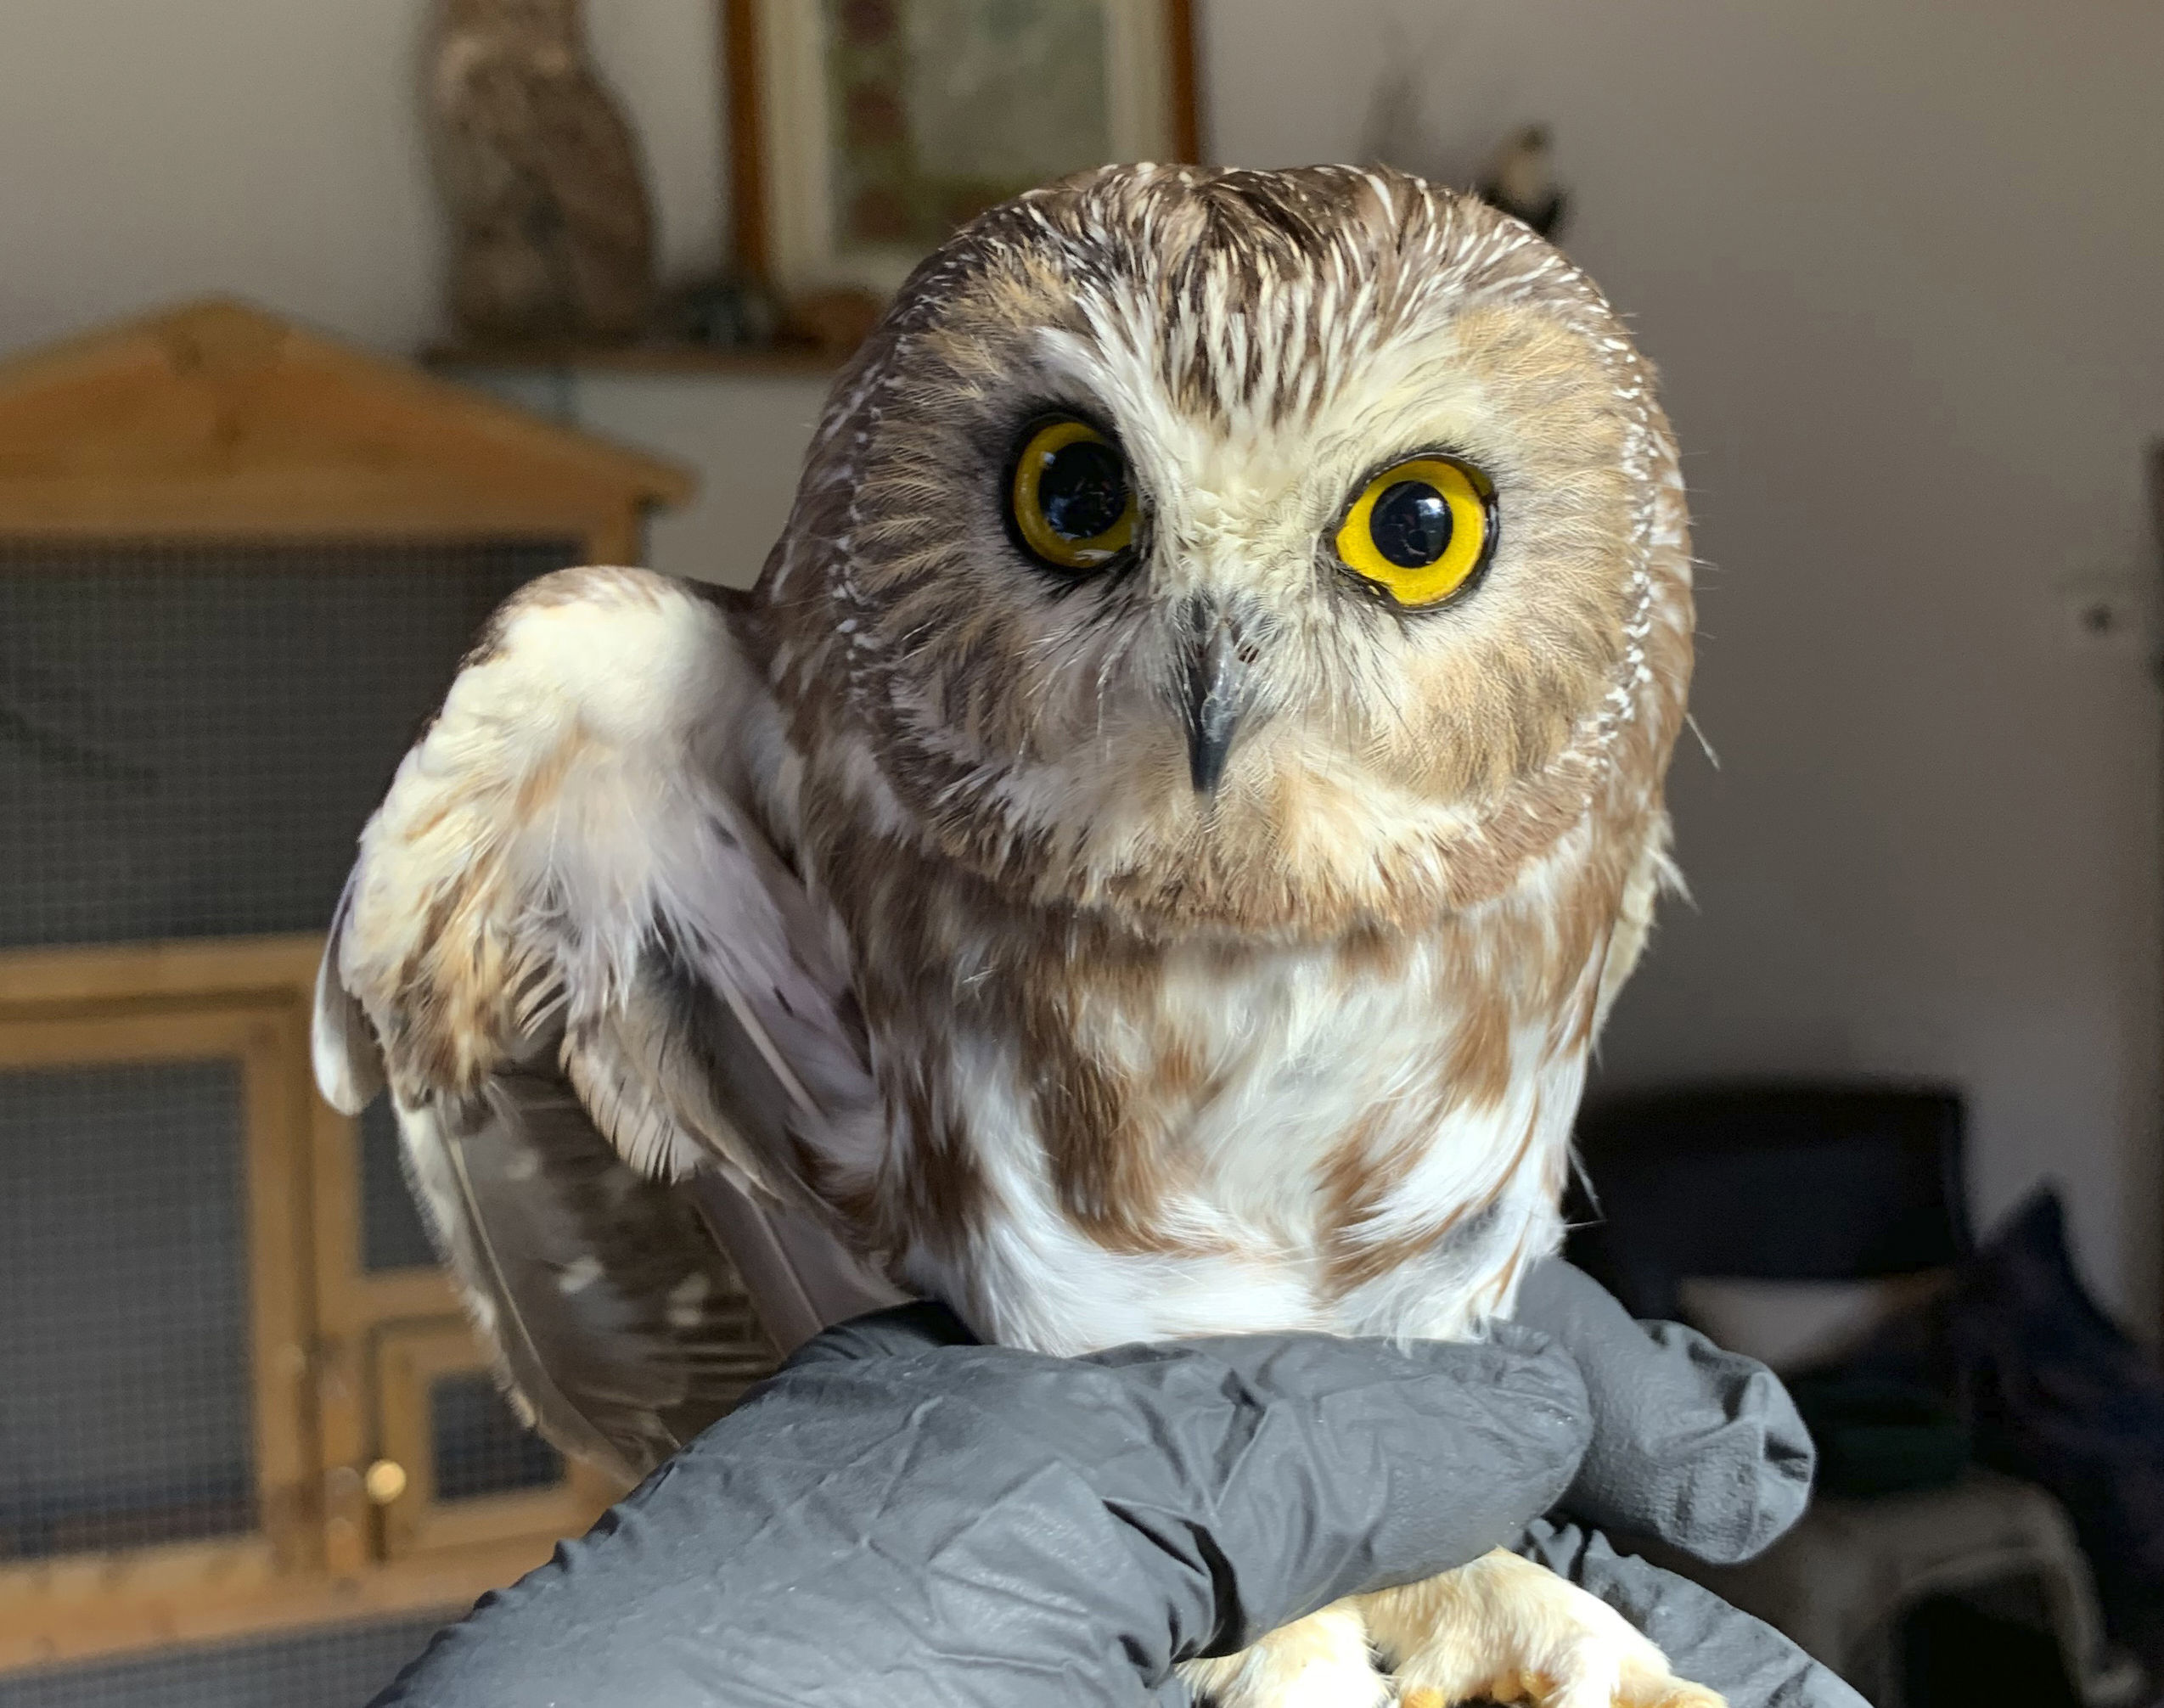 The owl will be released into the wild this weekend